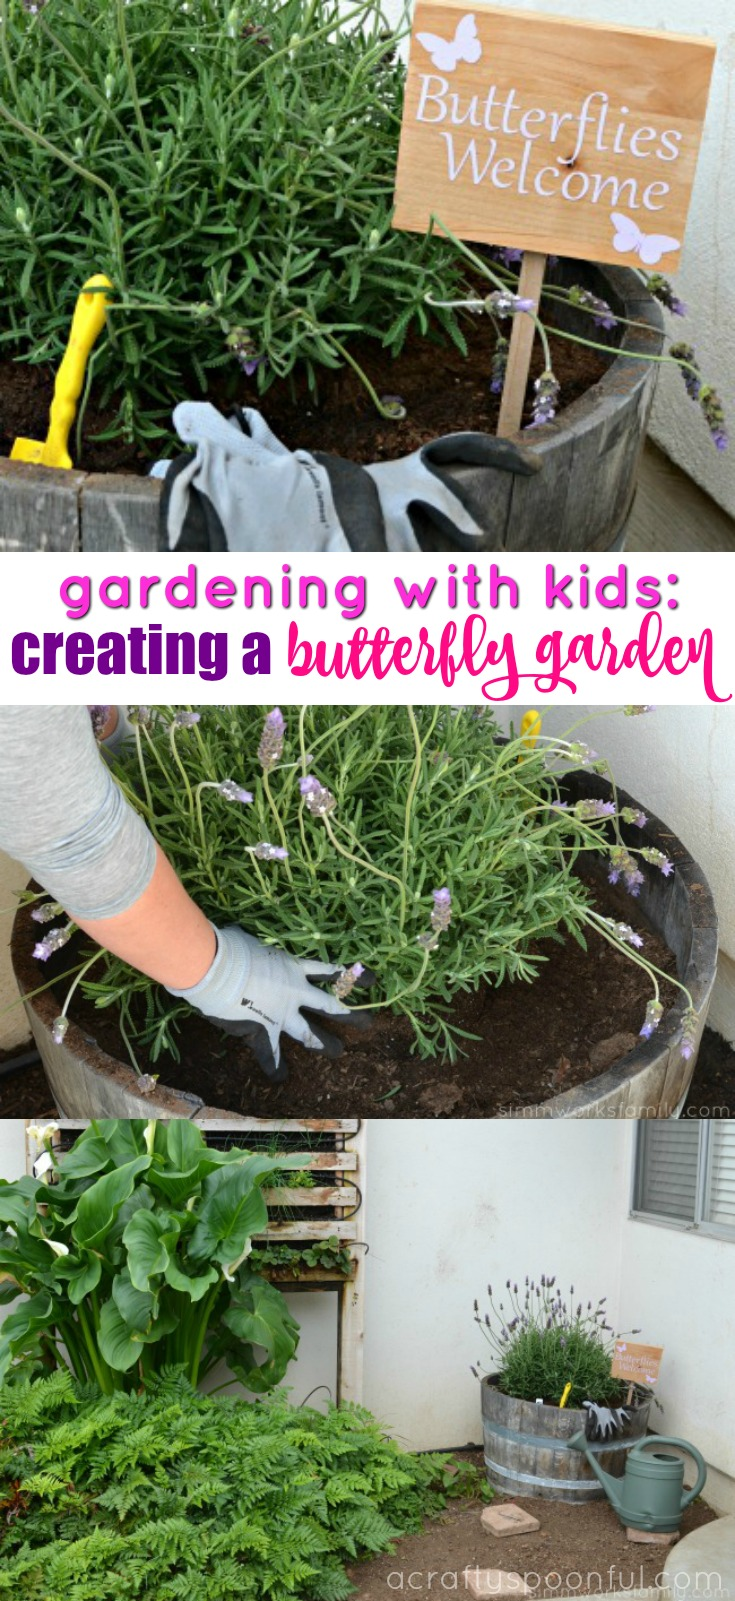 Want to attract more butterflies to your yard? By creating a butterfly garden, you allow the butterflies to have a space to eat, rest, and flutter around so they feel comfortable fluttering about throughout the year!